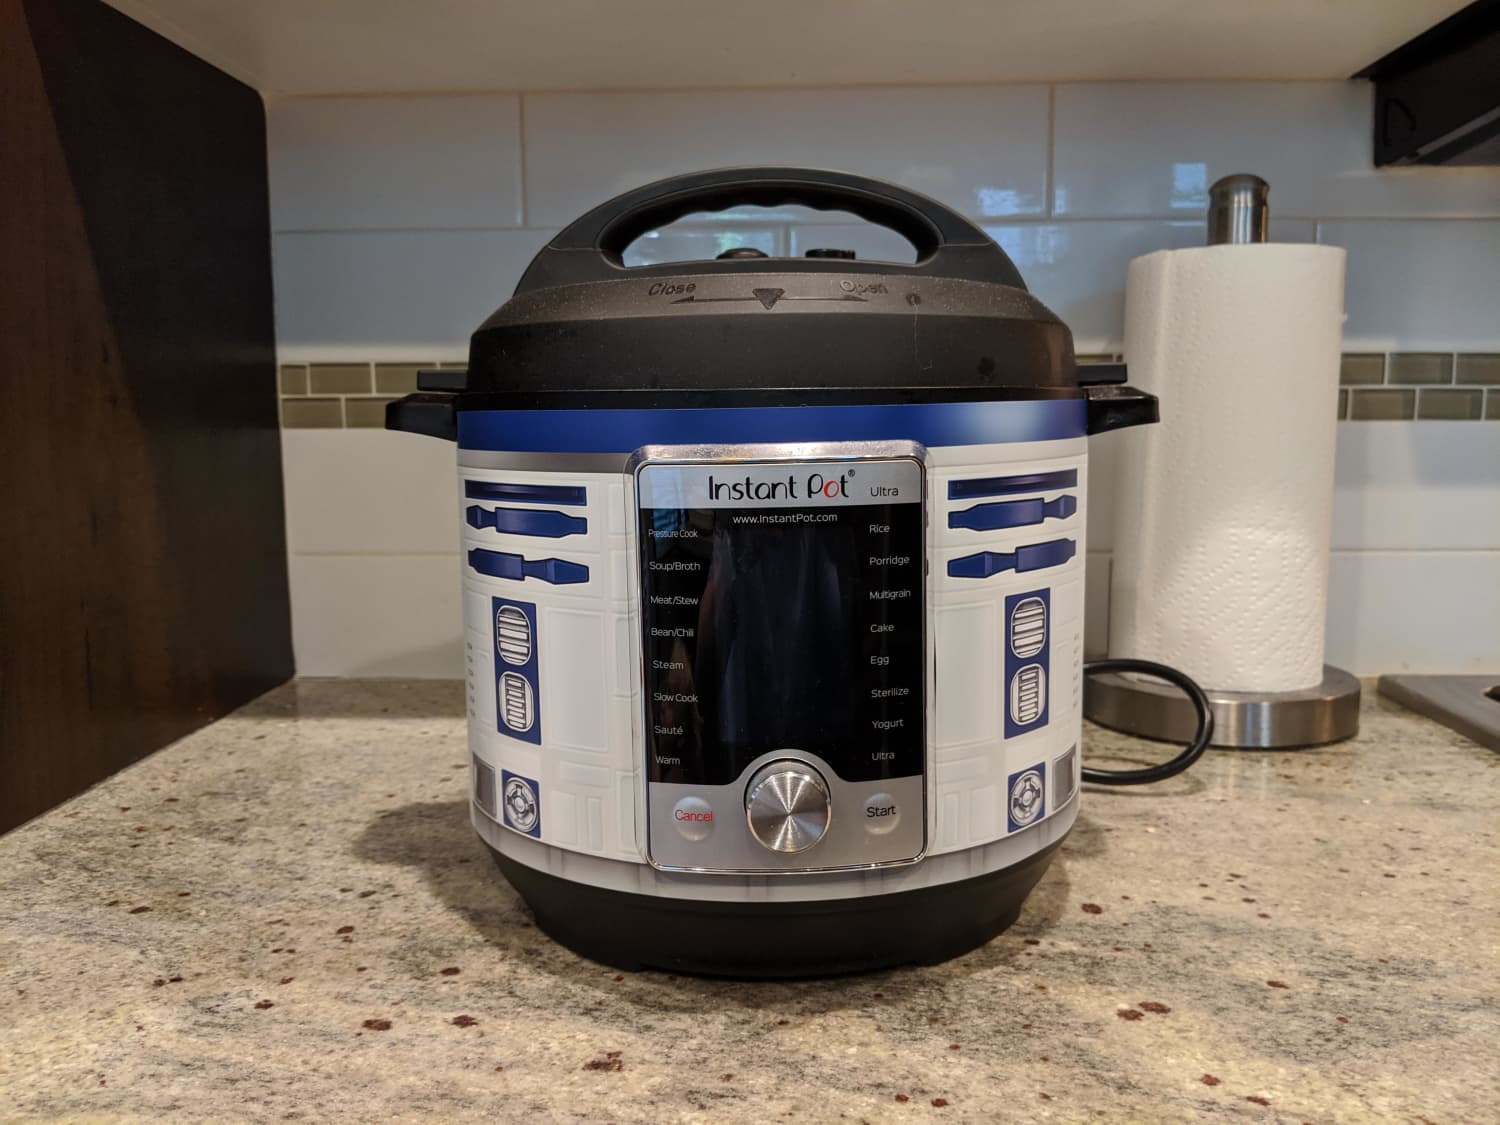 Here S How To Turn Your Instant Pot Into R2d2 From Star Wars Kitchn